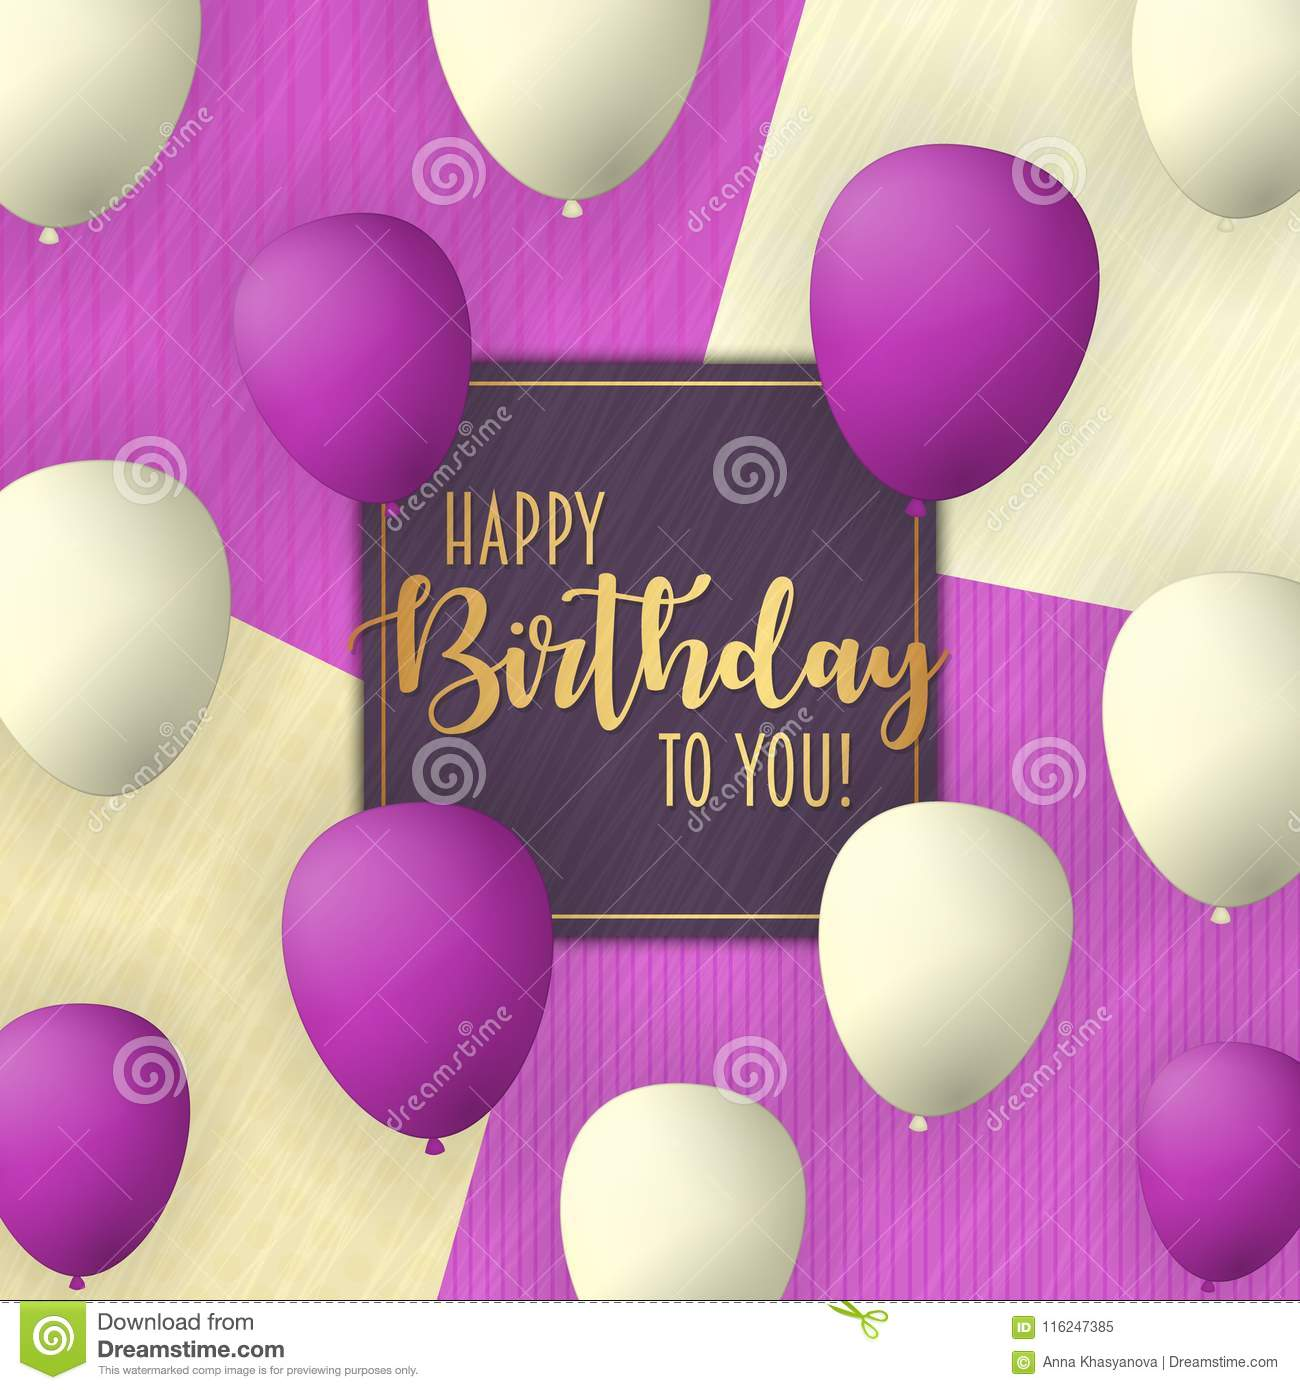 Happy Birthday vector card design with flying balloons. Vintage trendy background.